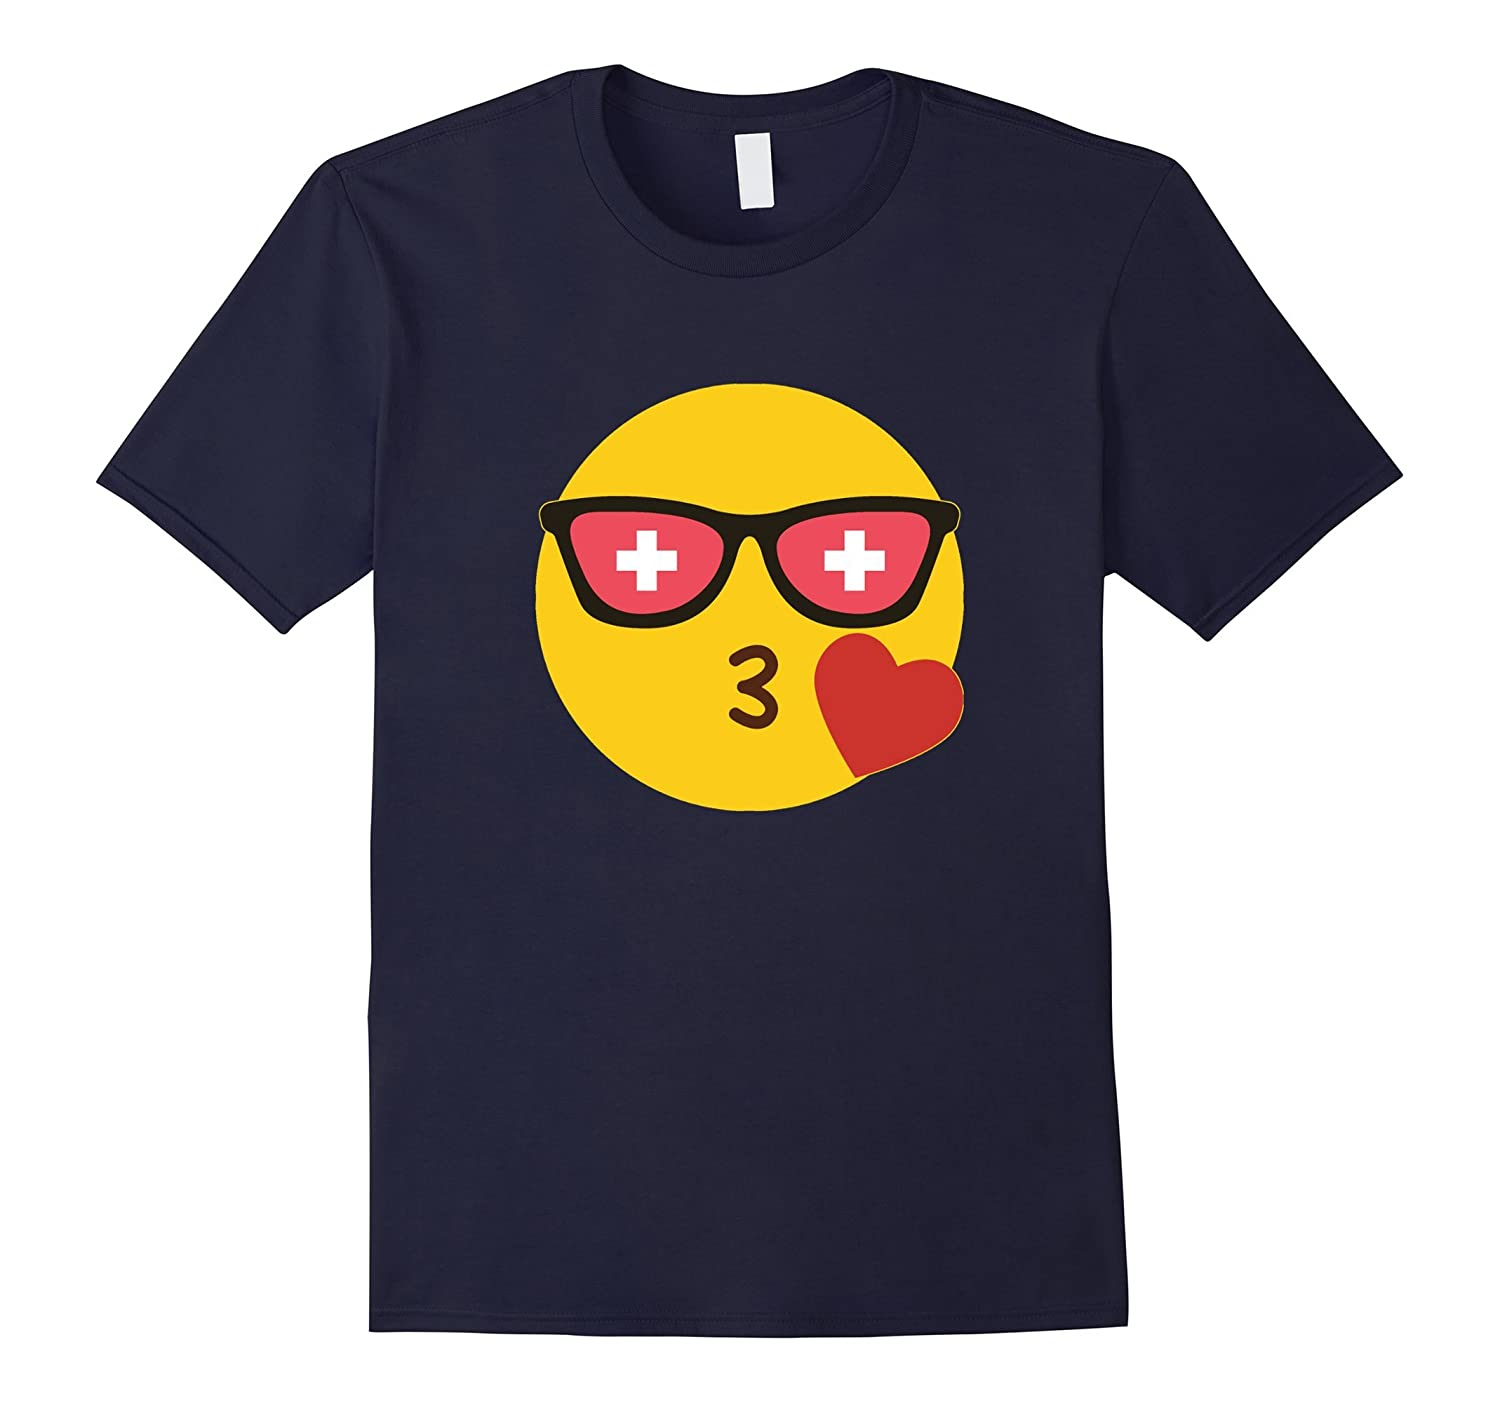 Emoji Switzerland T-Shirt Swiss Flag Sunglasses Funny Tee-Vaci